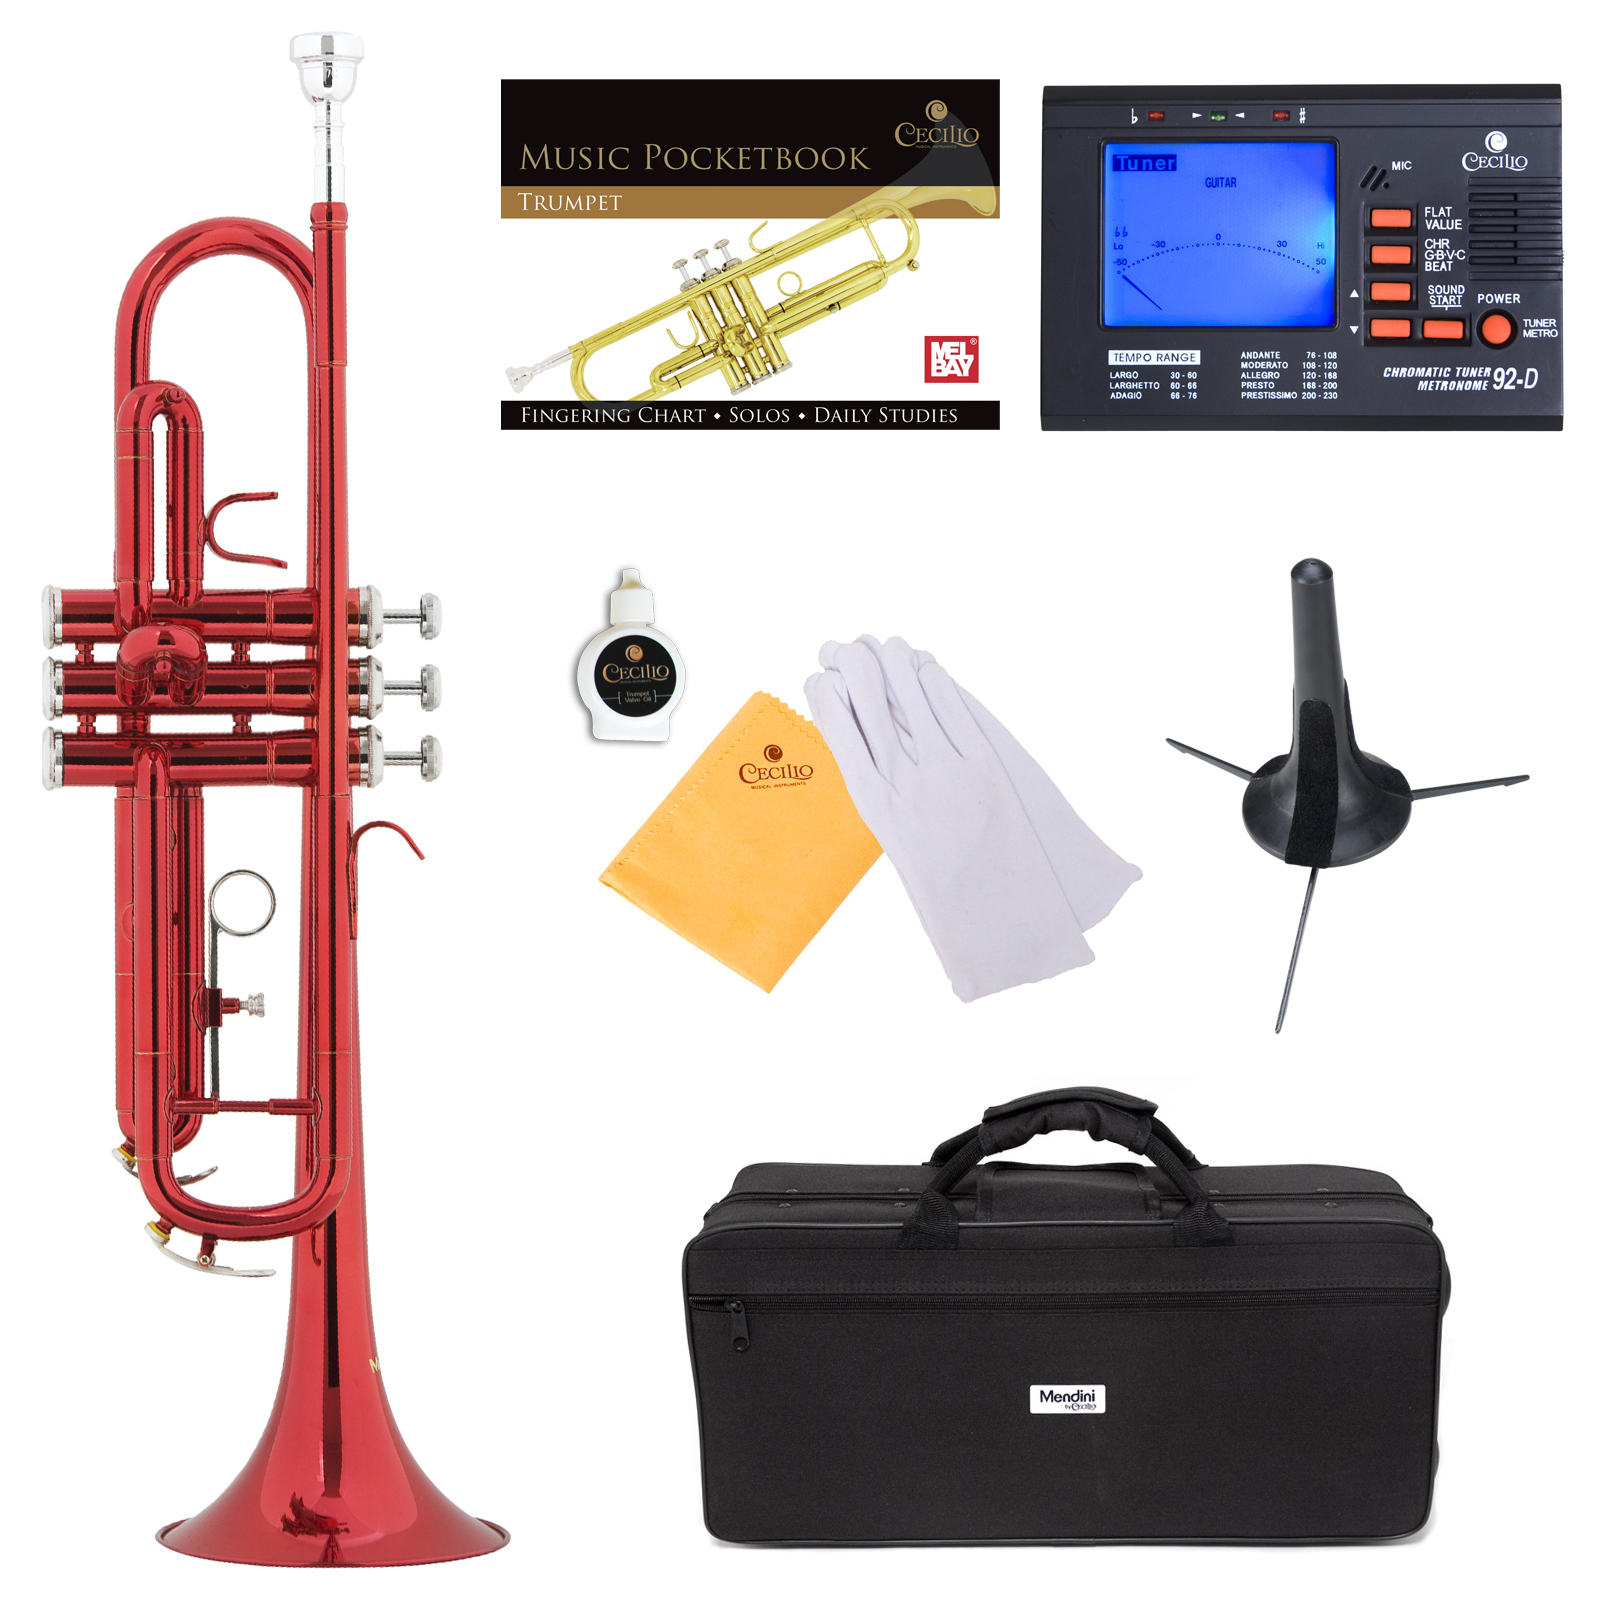 Mendini by Cecilio Bb Trumpet w/Tuner, Stand, Pocketbook, Deluxe Case and 1 Year Warranty, Red Lacquer MTT-RL+SD+PB+92D